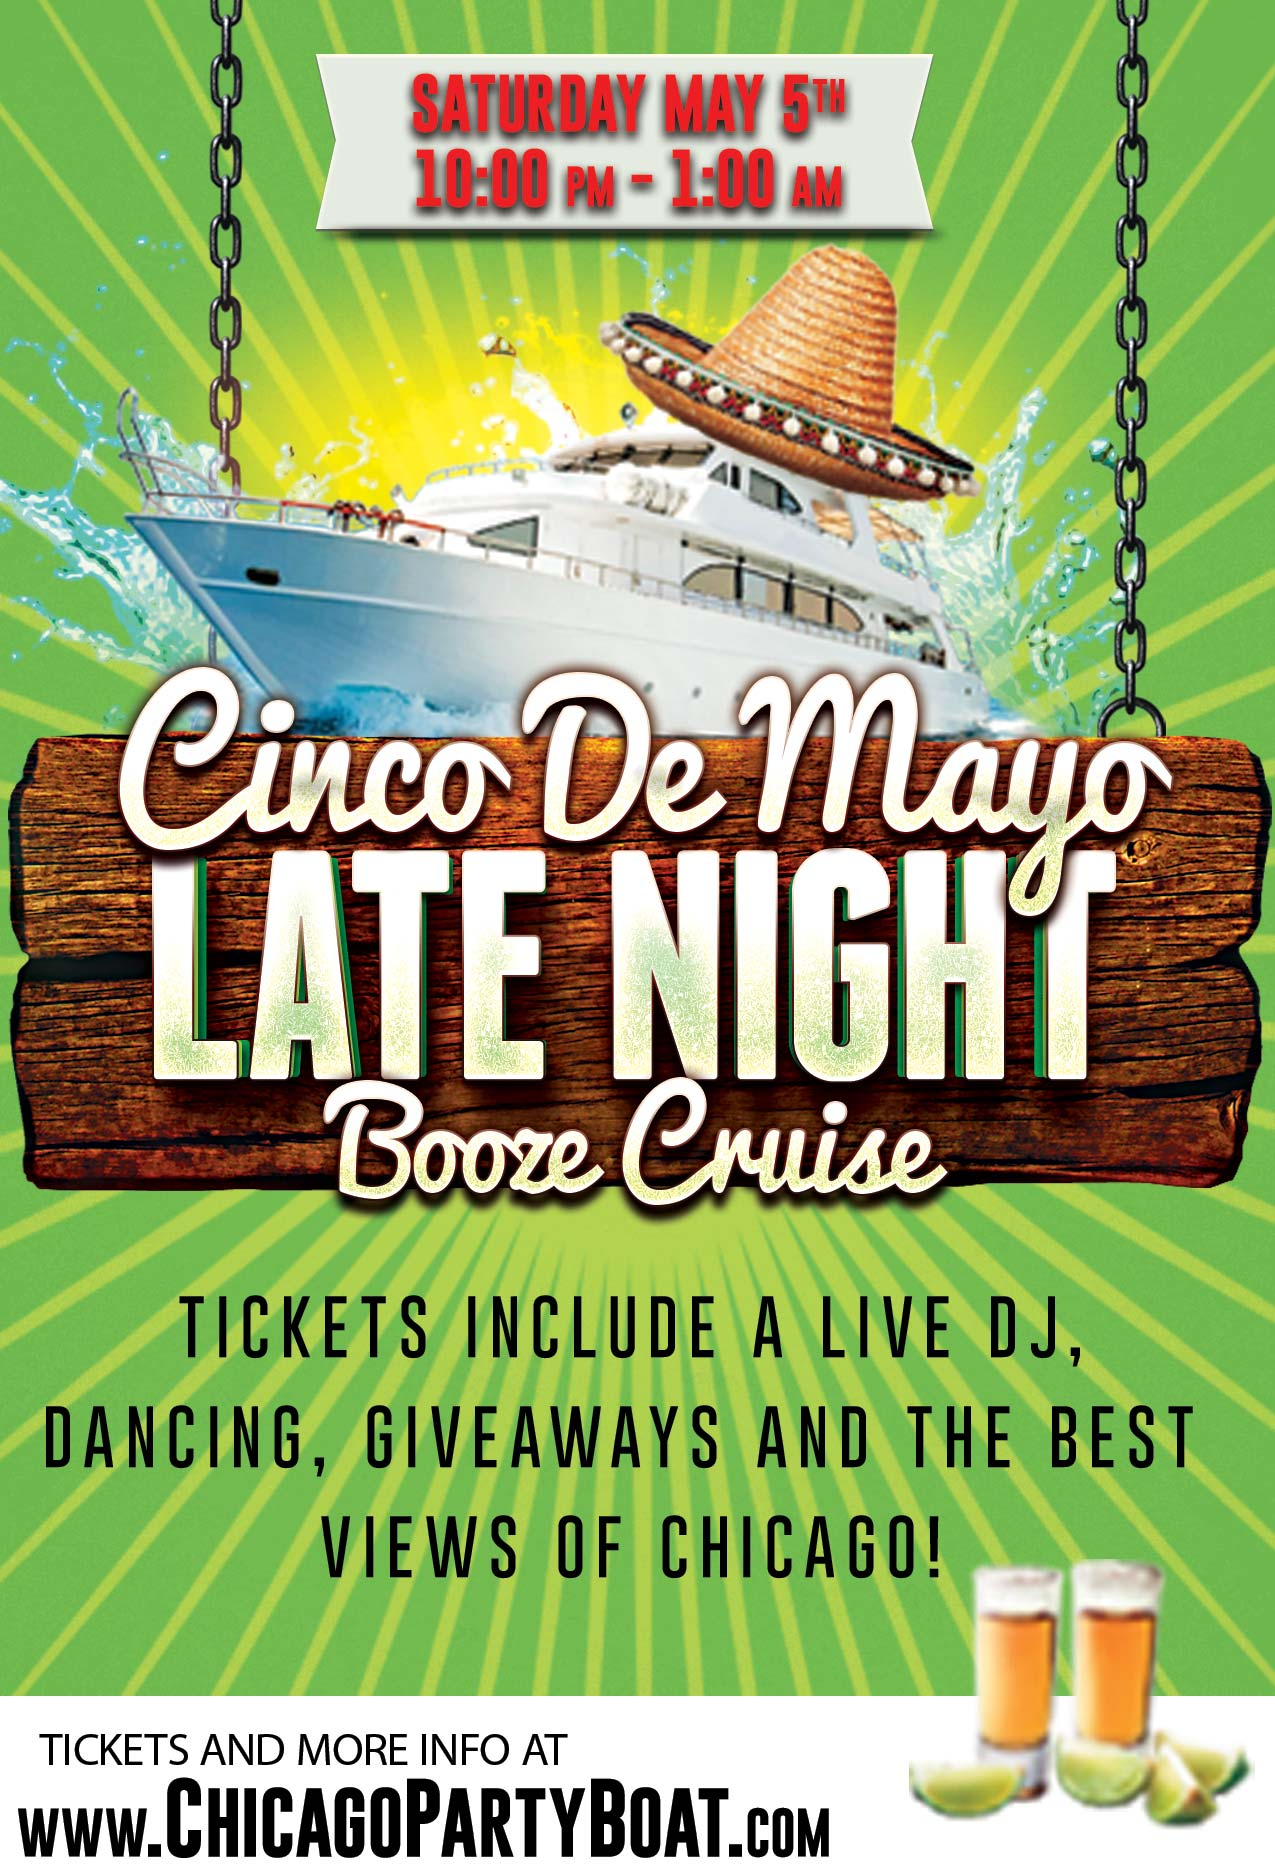 Cinco de Mayo Late Night Booze Cruise - Tickets include a Live DJ, Dancing, Giveaways, and the best views of Chicago!